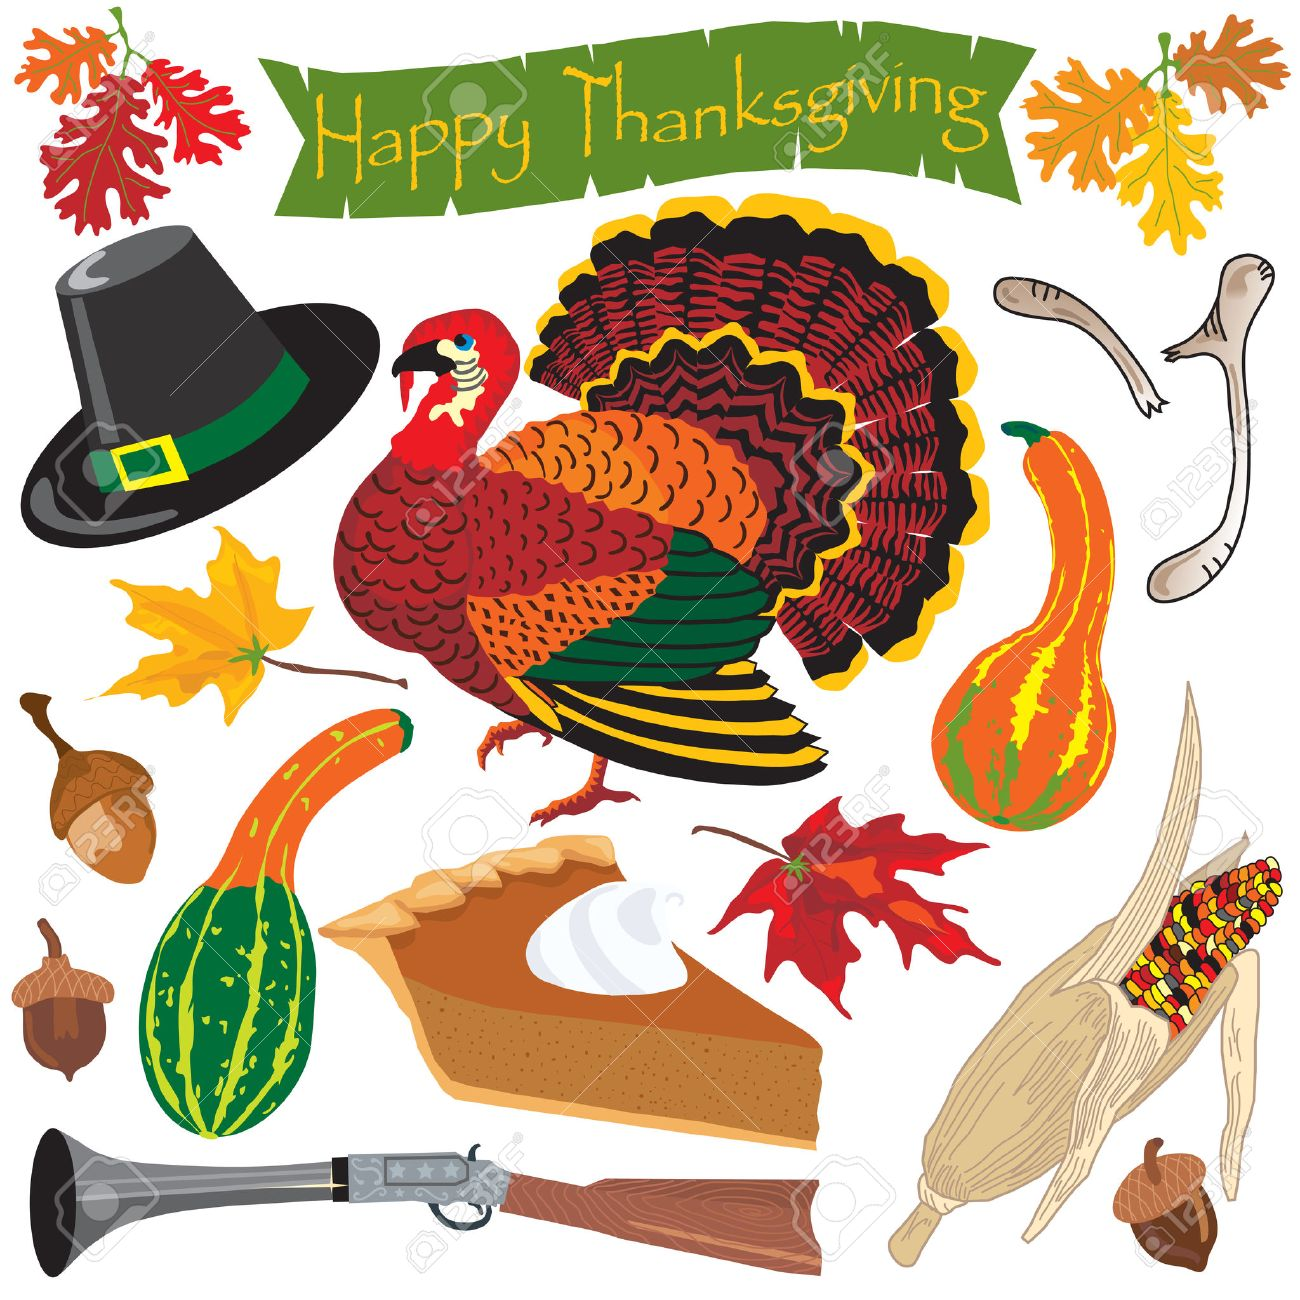 Thanksgiving clipart icons and elements for autumn Stock Vector - 5706360